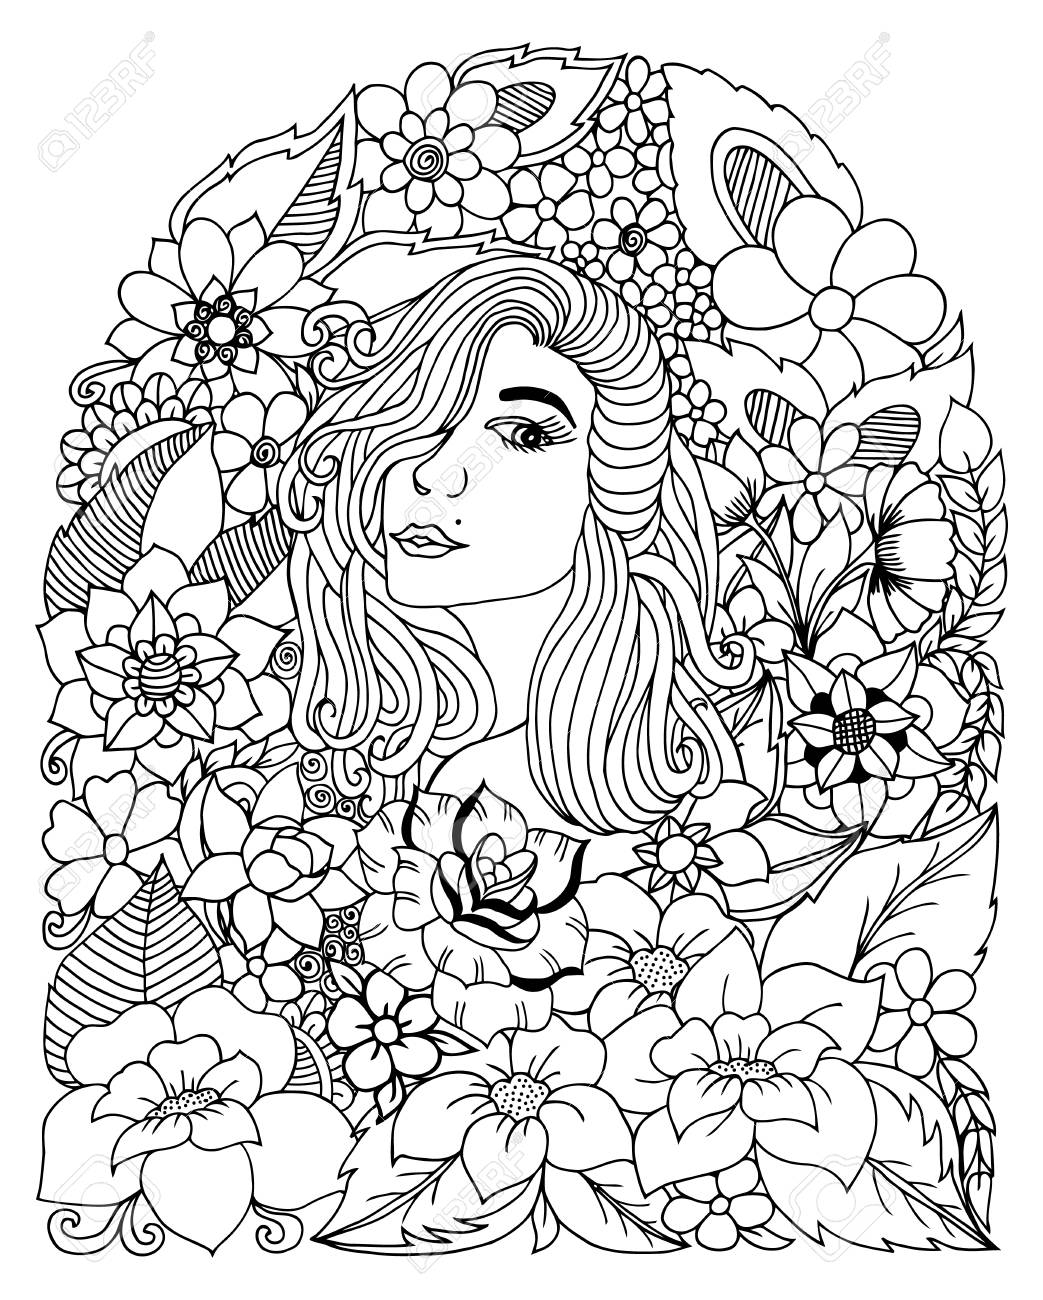 Illustration Portrait Of A Girl Among The Flowers. Coloring Book ...